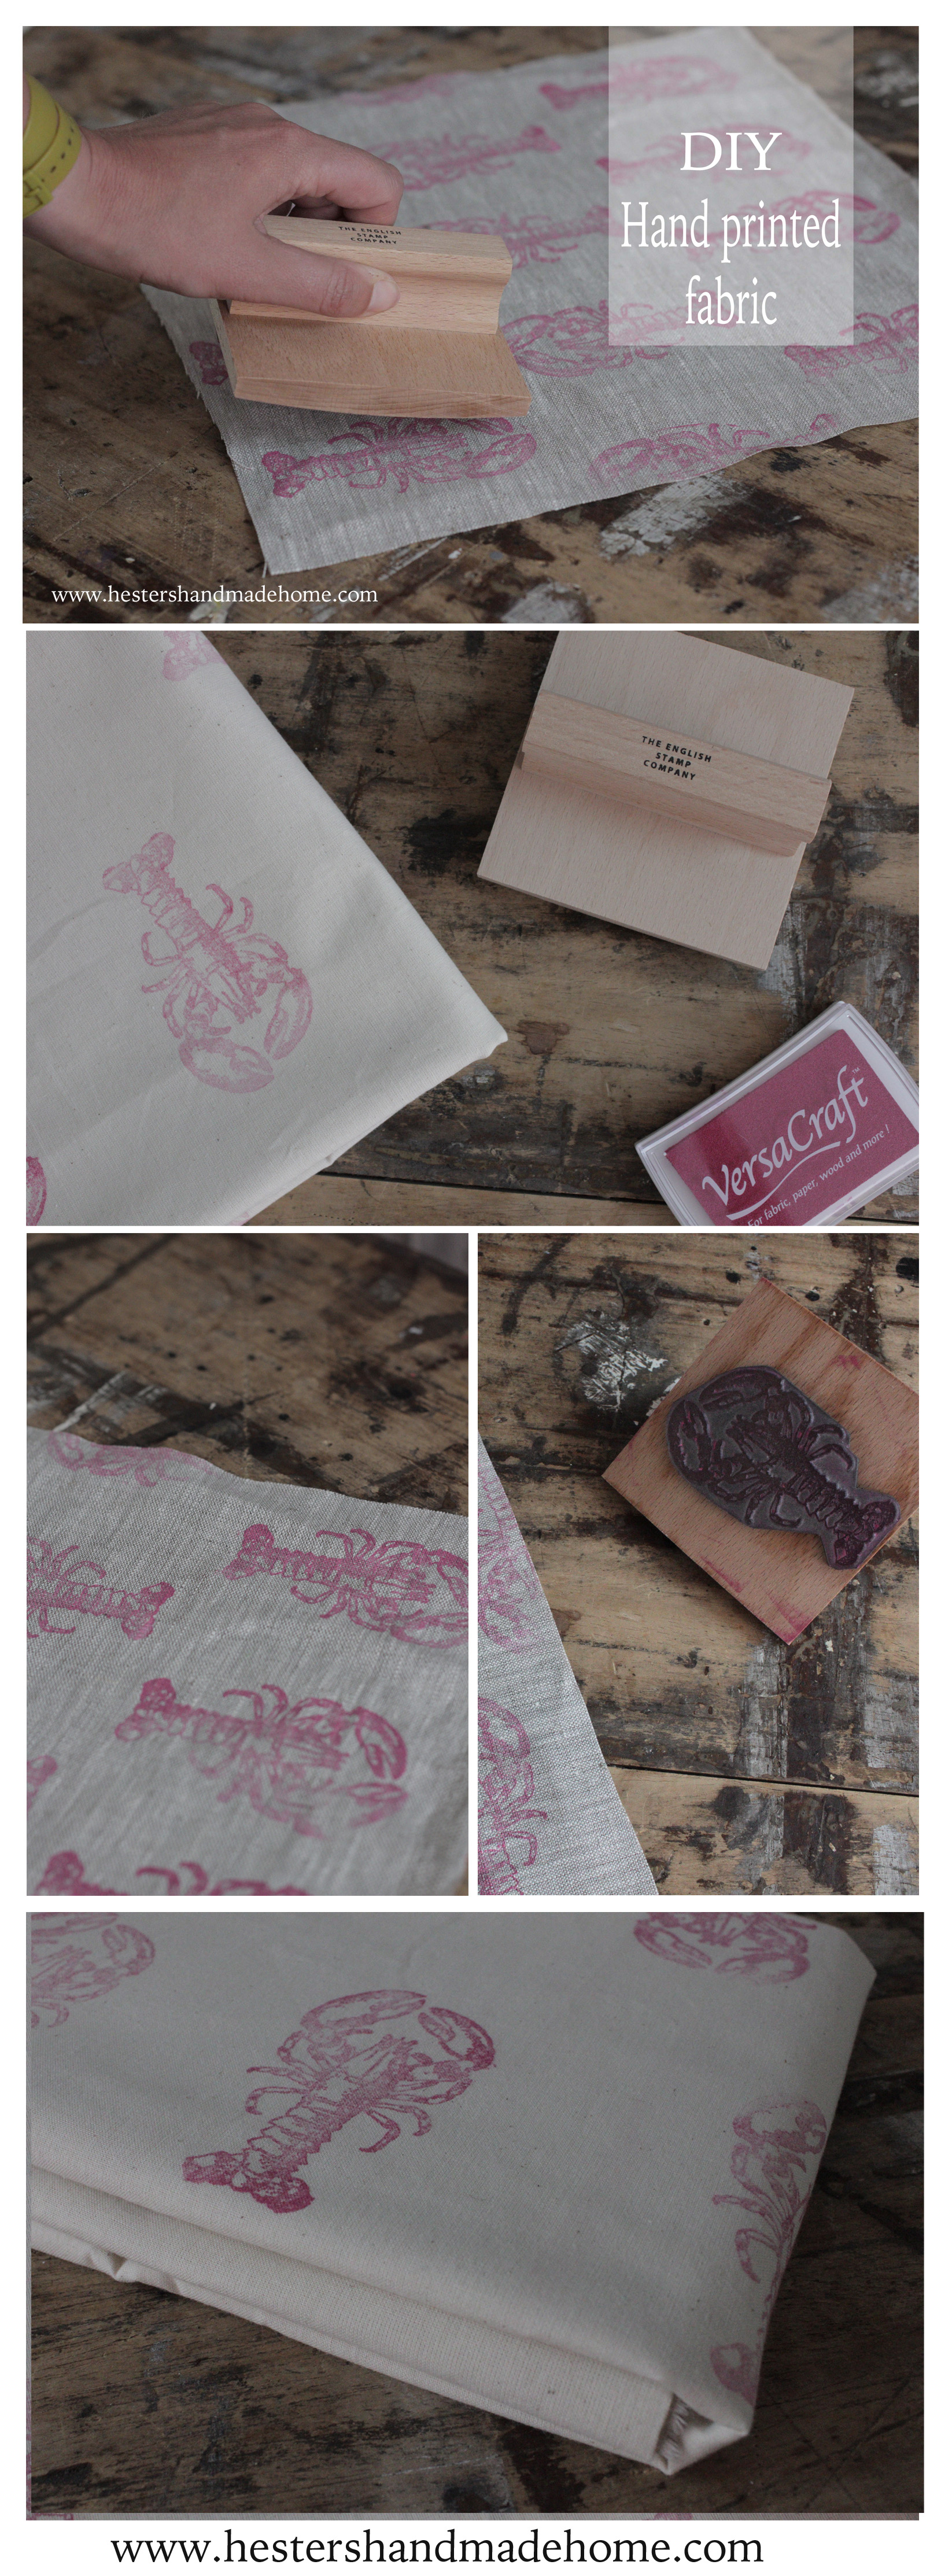 Print your own fabric, tutorial by Hester's handmade home